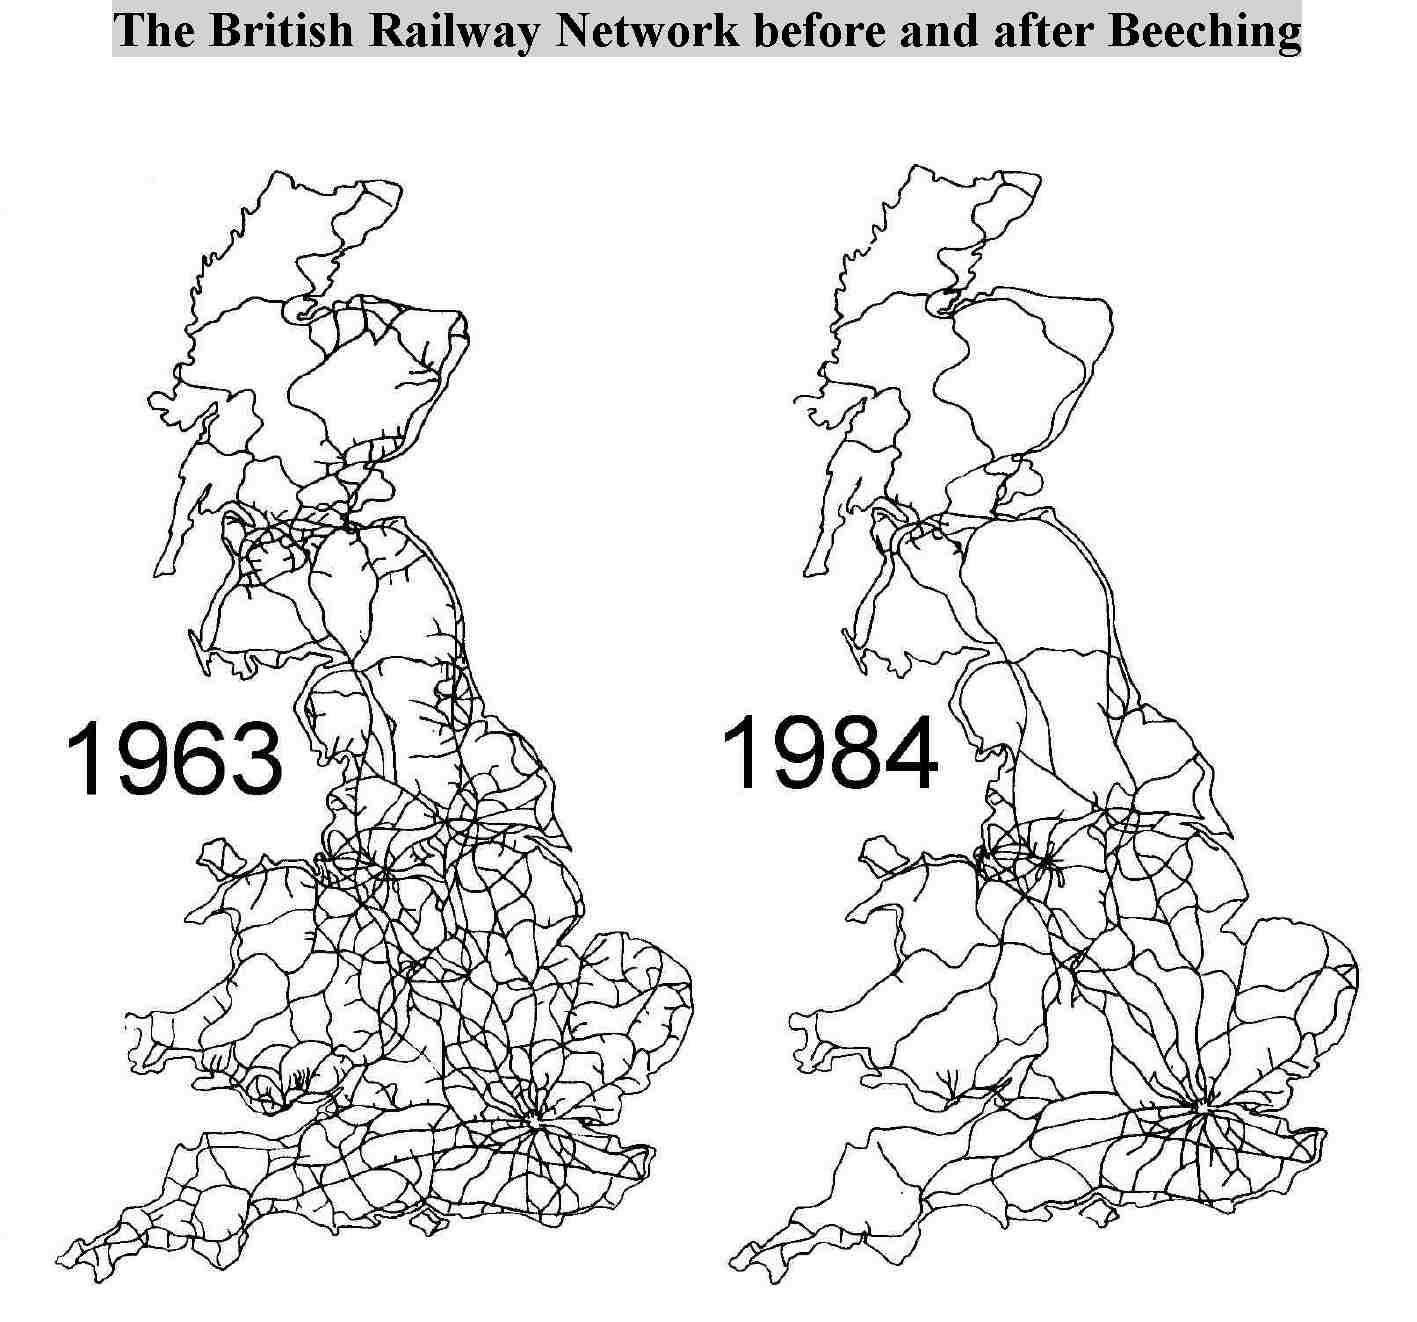 Britain's train network before and after Beeching | Train ... on england river map, england train system map, england bus map, england steam trains, england train routes, england railway, west country england map, walk cotswold england map, england airport map, england county map 1800, lake country england map, england road map, england ocean map, england map with latitude and longitude, england districts map, stonehenge england map, train in england map, england agriculture map, derbyshire england map, england rail system,